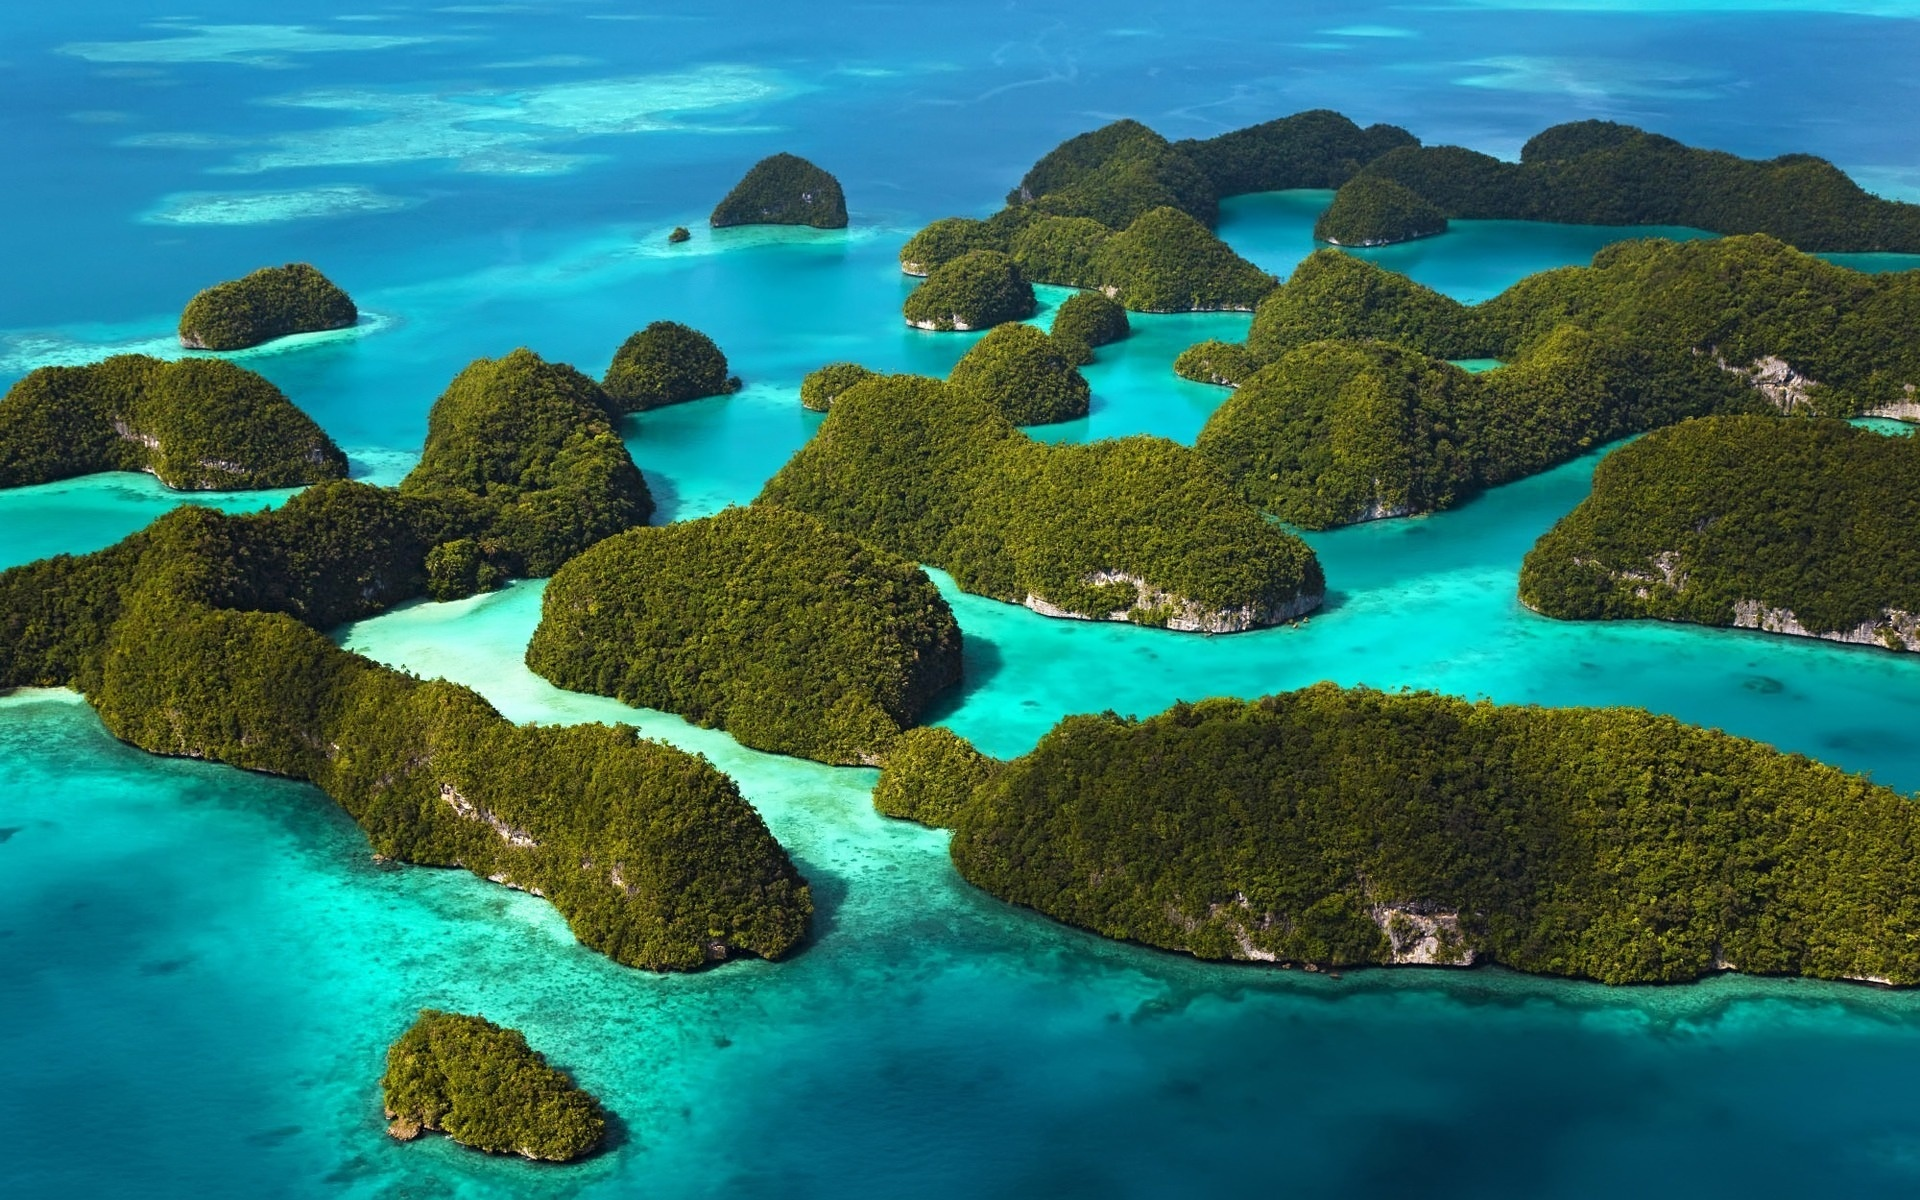 Rock Islands of Pulau, Singapoore